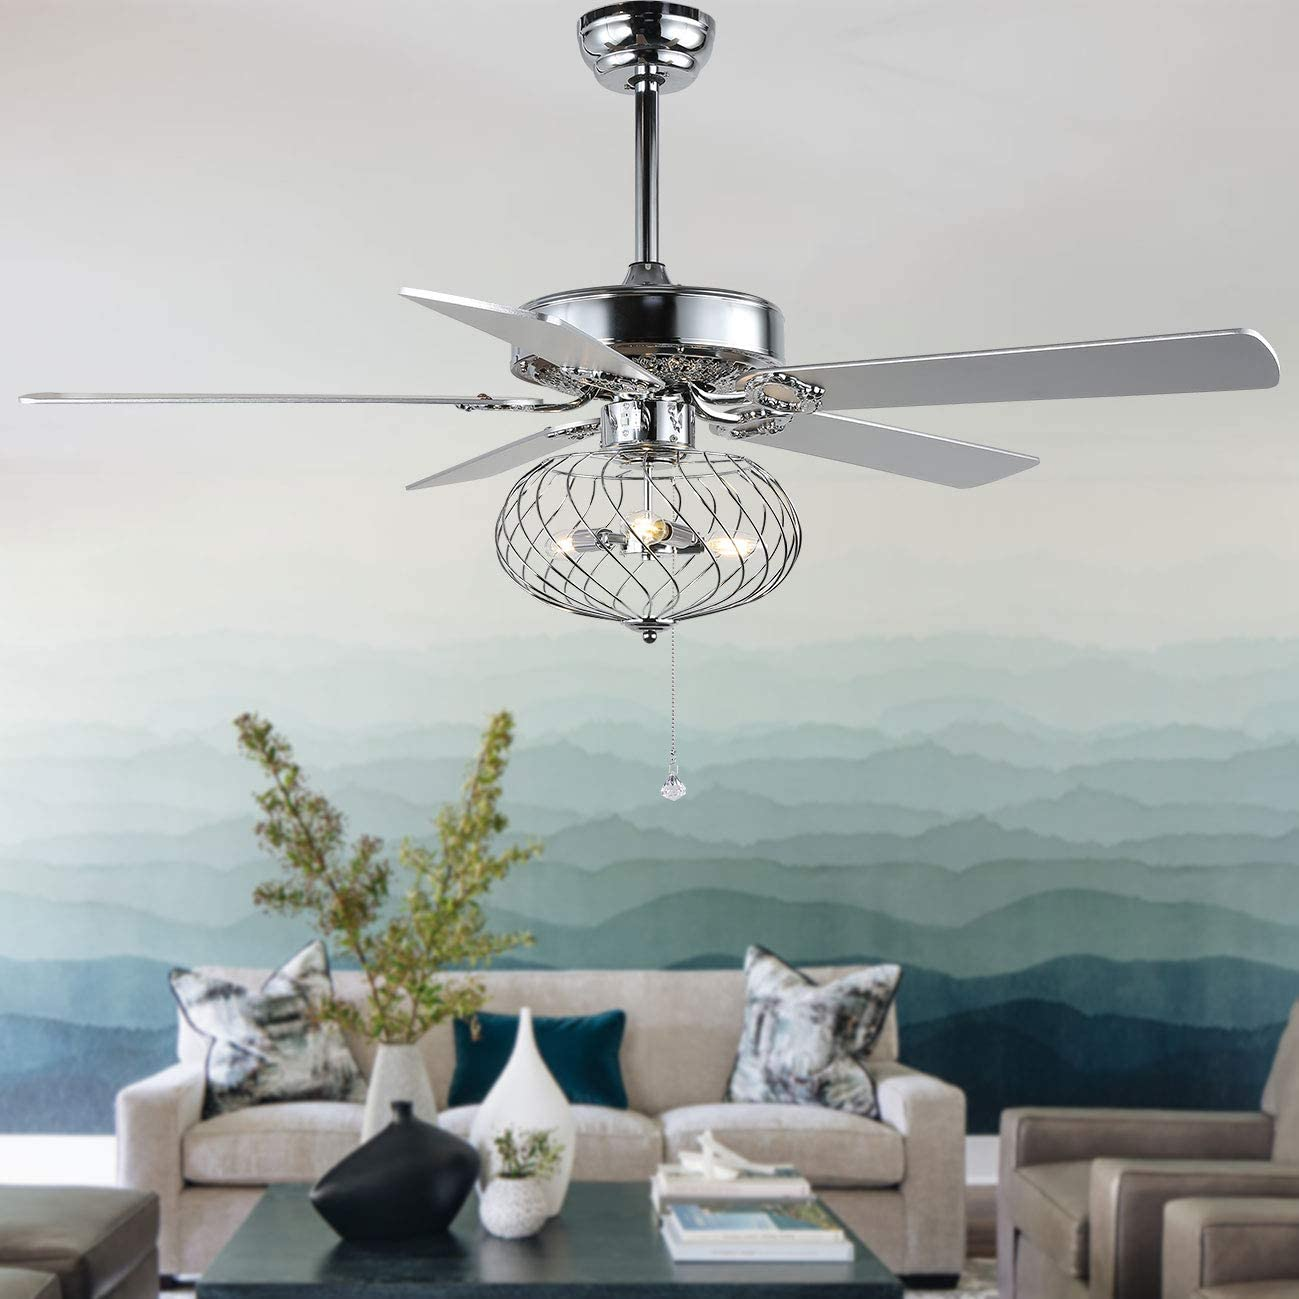 Modern ceiling fan Cheap mail order specialty store 52